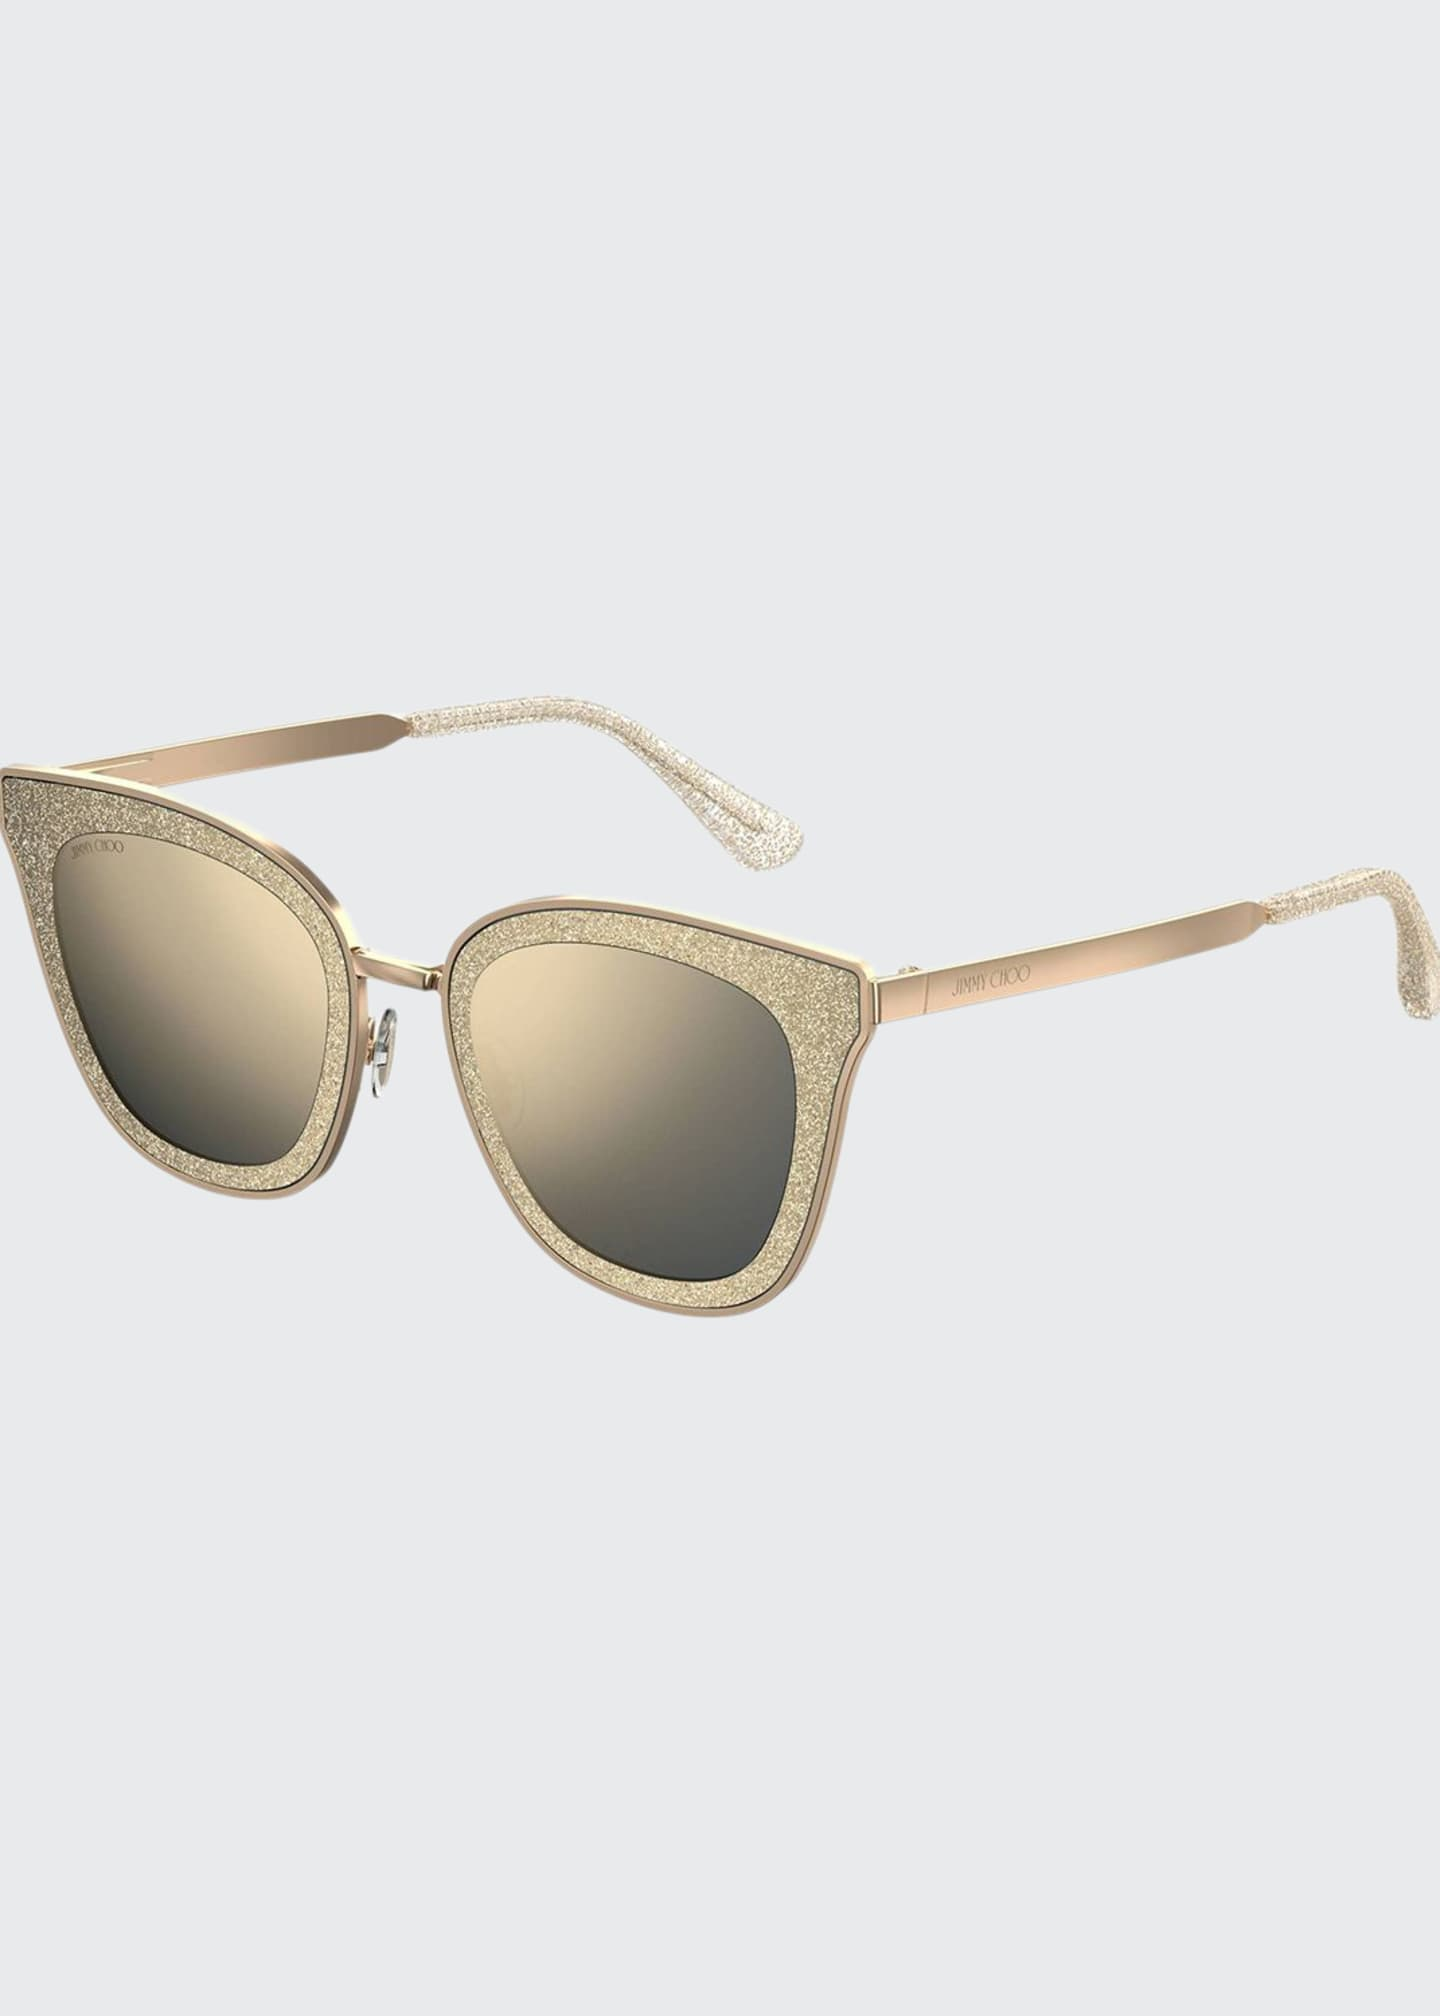 Jimmy Choo Lizzys Glittered Mirrored Cat-Eye Sunglasses